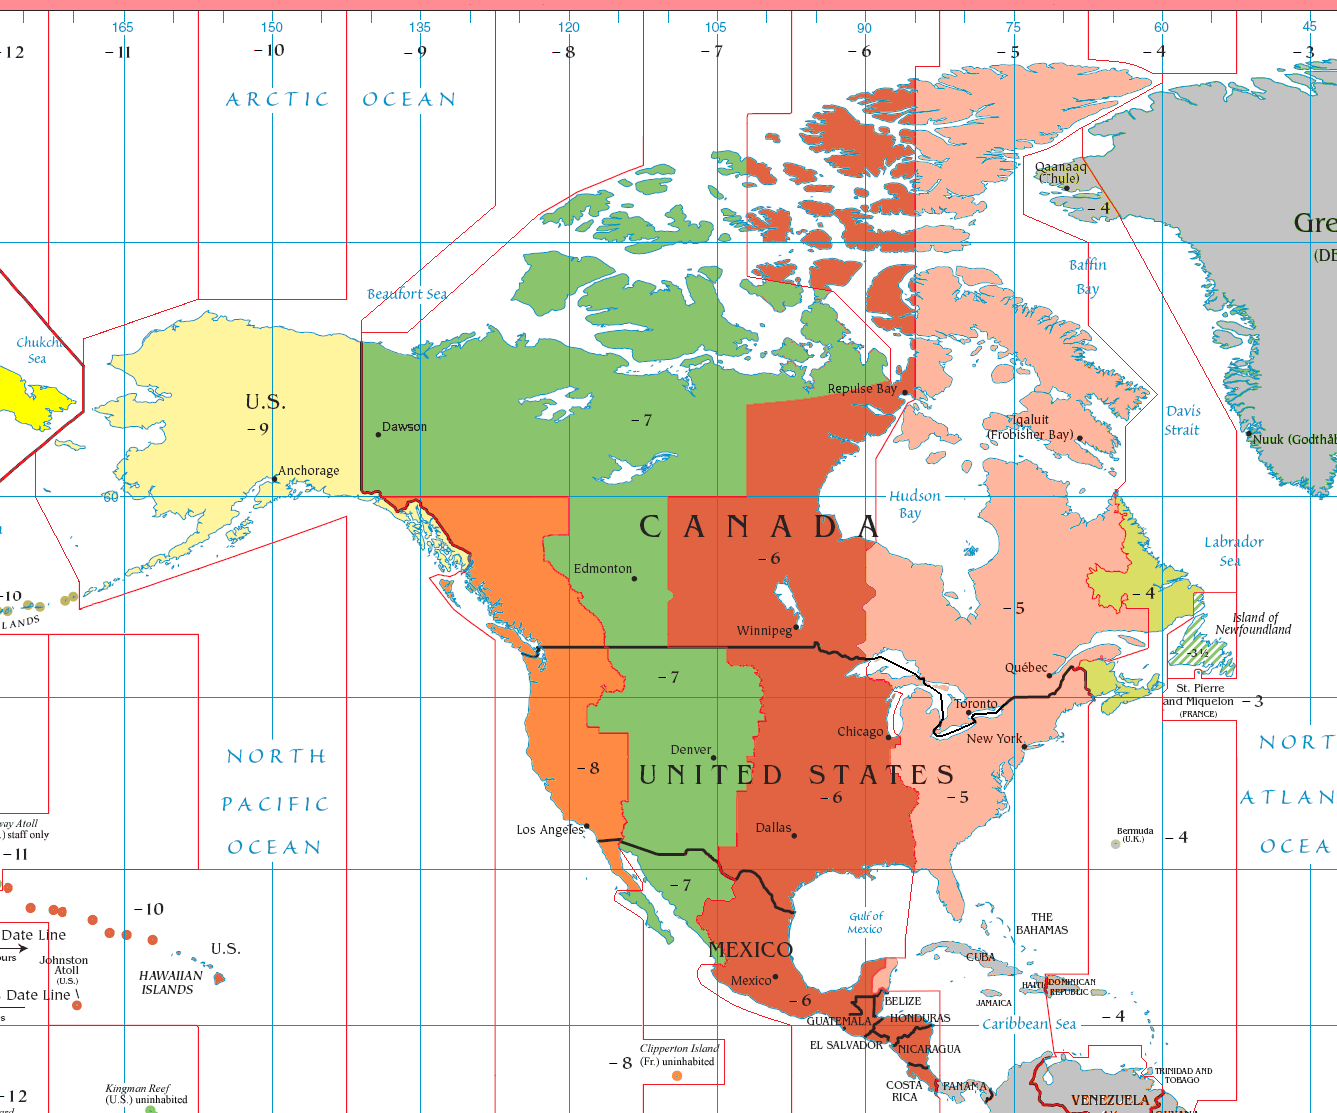 Alaska Time Zone - Wikipedia on show me a usa map, current time in alaska, show map of spain, show alaska on a map, document purchase of alaska, show map of mexico, alagnak river alaska, world map alaska, show about living in alaska, show map of united states, exact location of alaska, state cities in alaska, lumberjack show ketchikan alaska, weather in sitka alaska, map from texas to alaska, fort seward haines alaska, show me the map, location of juneau alaska, chikuminuk lake alaska,